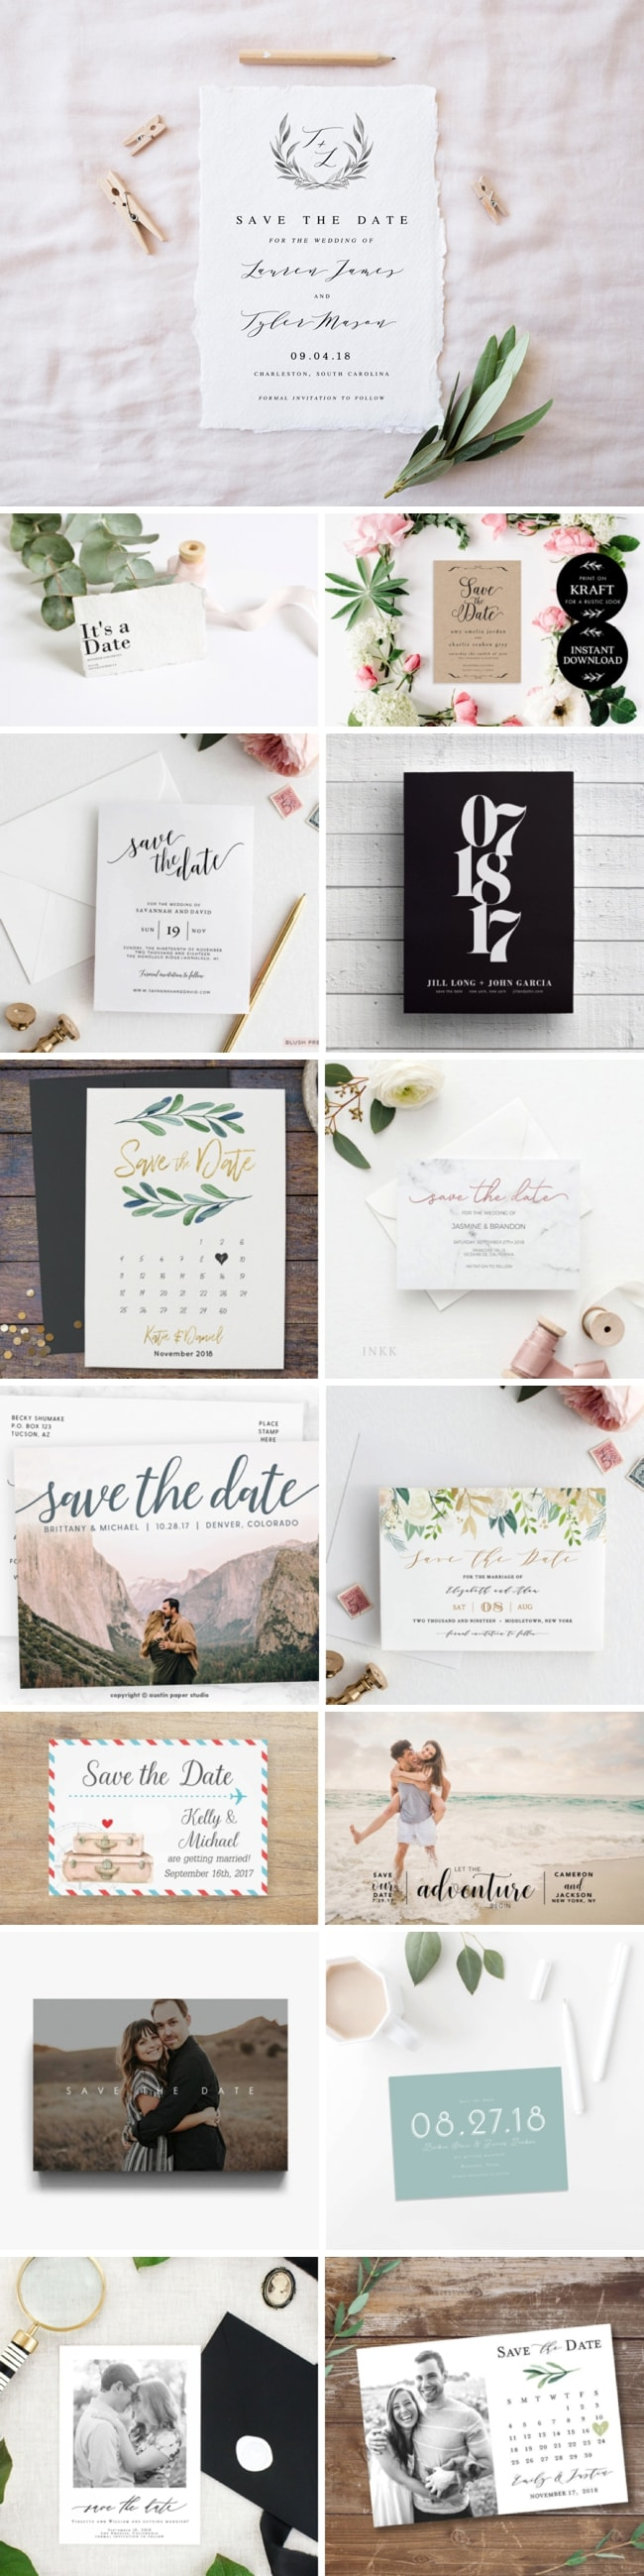 Printable Wedding Save the Dates